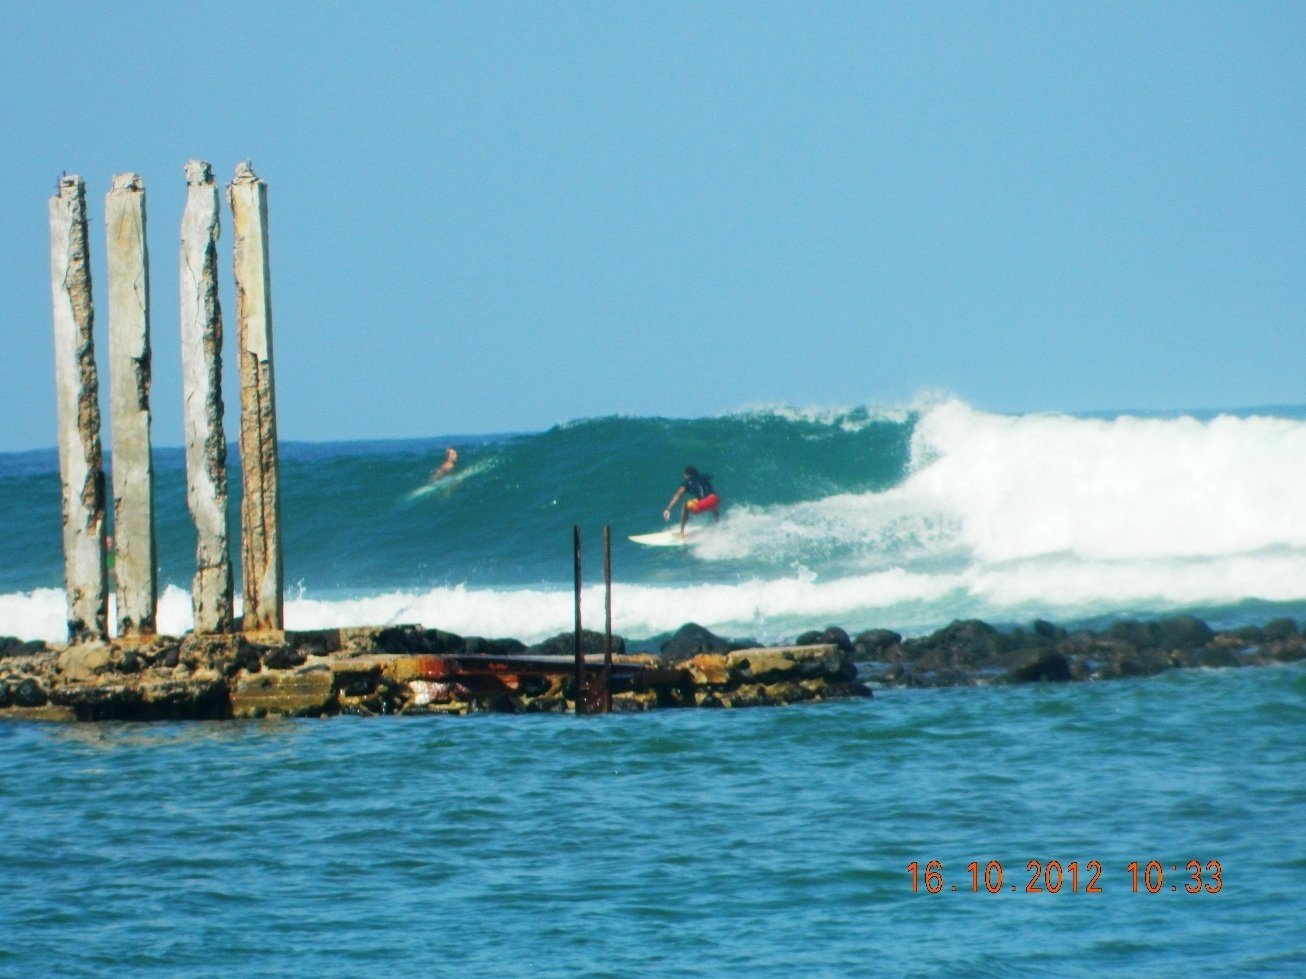 Malika Surf Camp - Senegal's photo of N'gor Rights